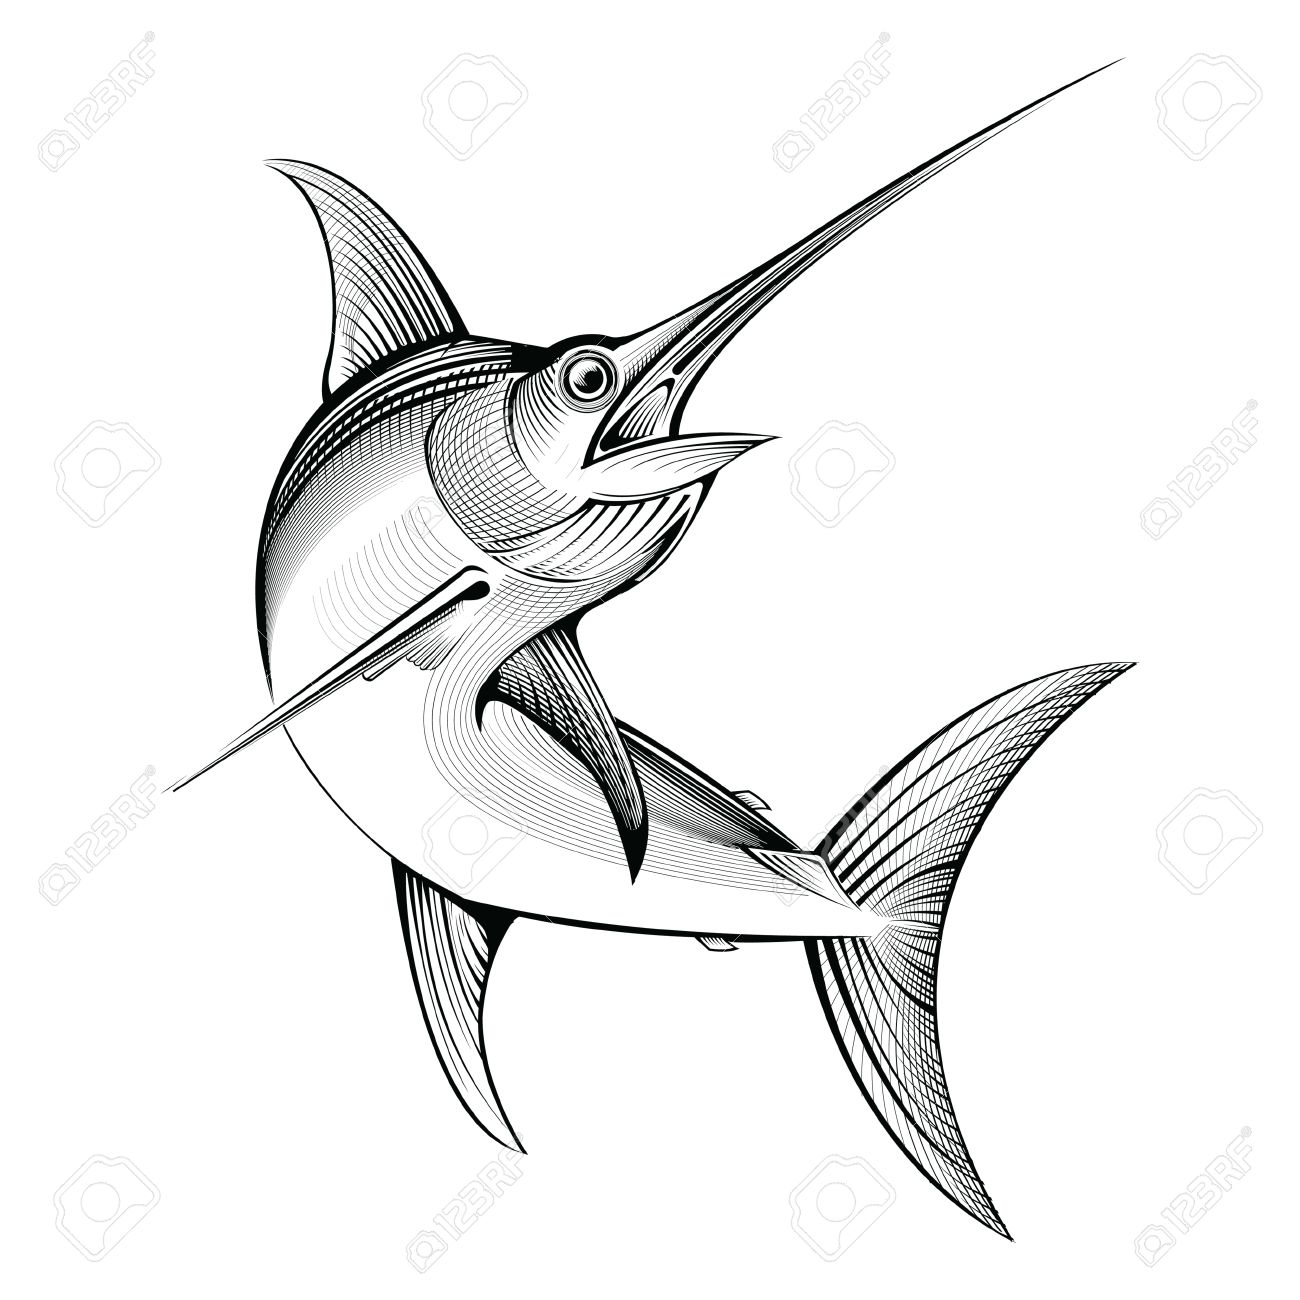 Uncategorized Swordfish Drawing vector swordfish line engraving illustration royalty free stock 55445085